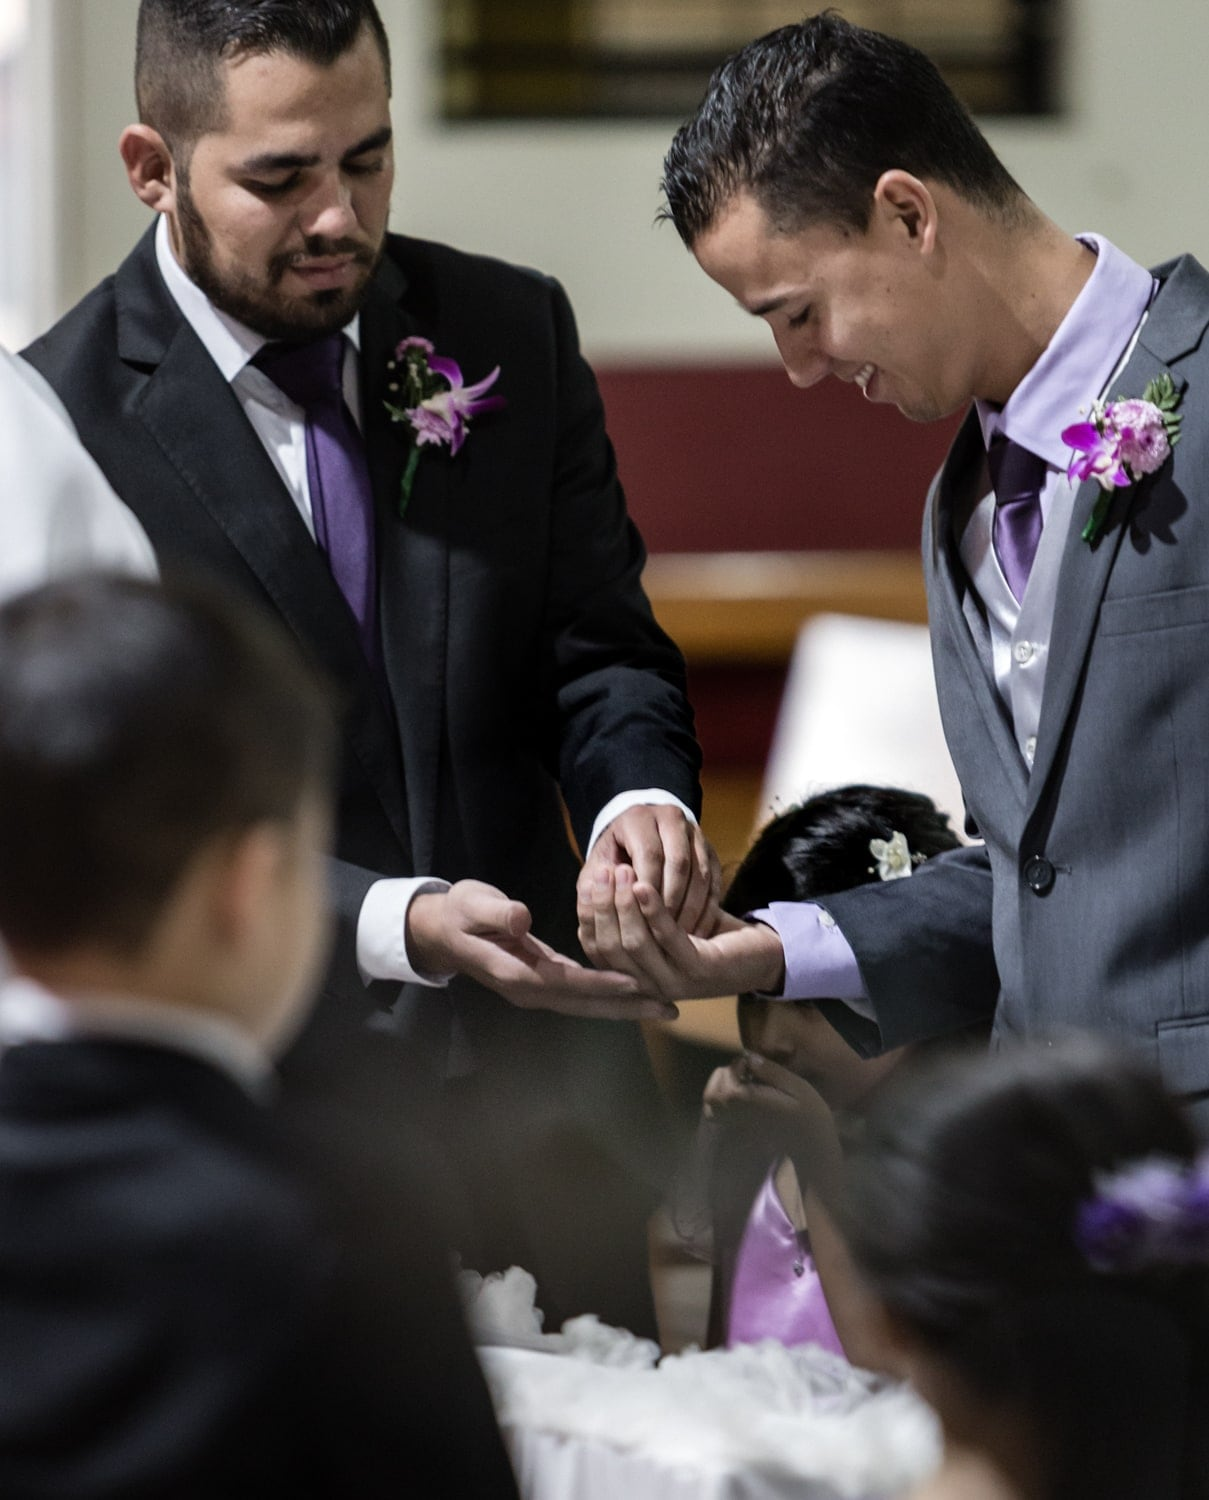 Ring bearer gives wedding bands to groom during wedding ceremony.